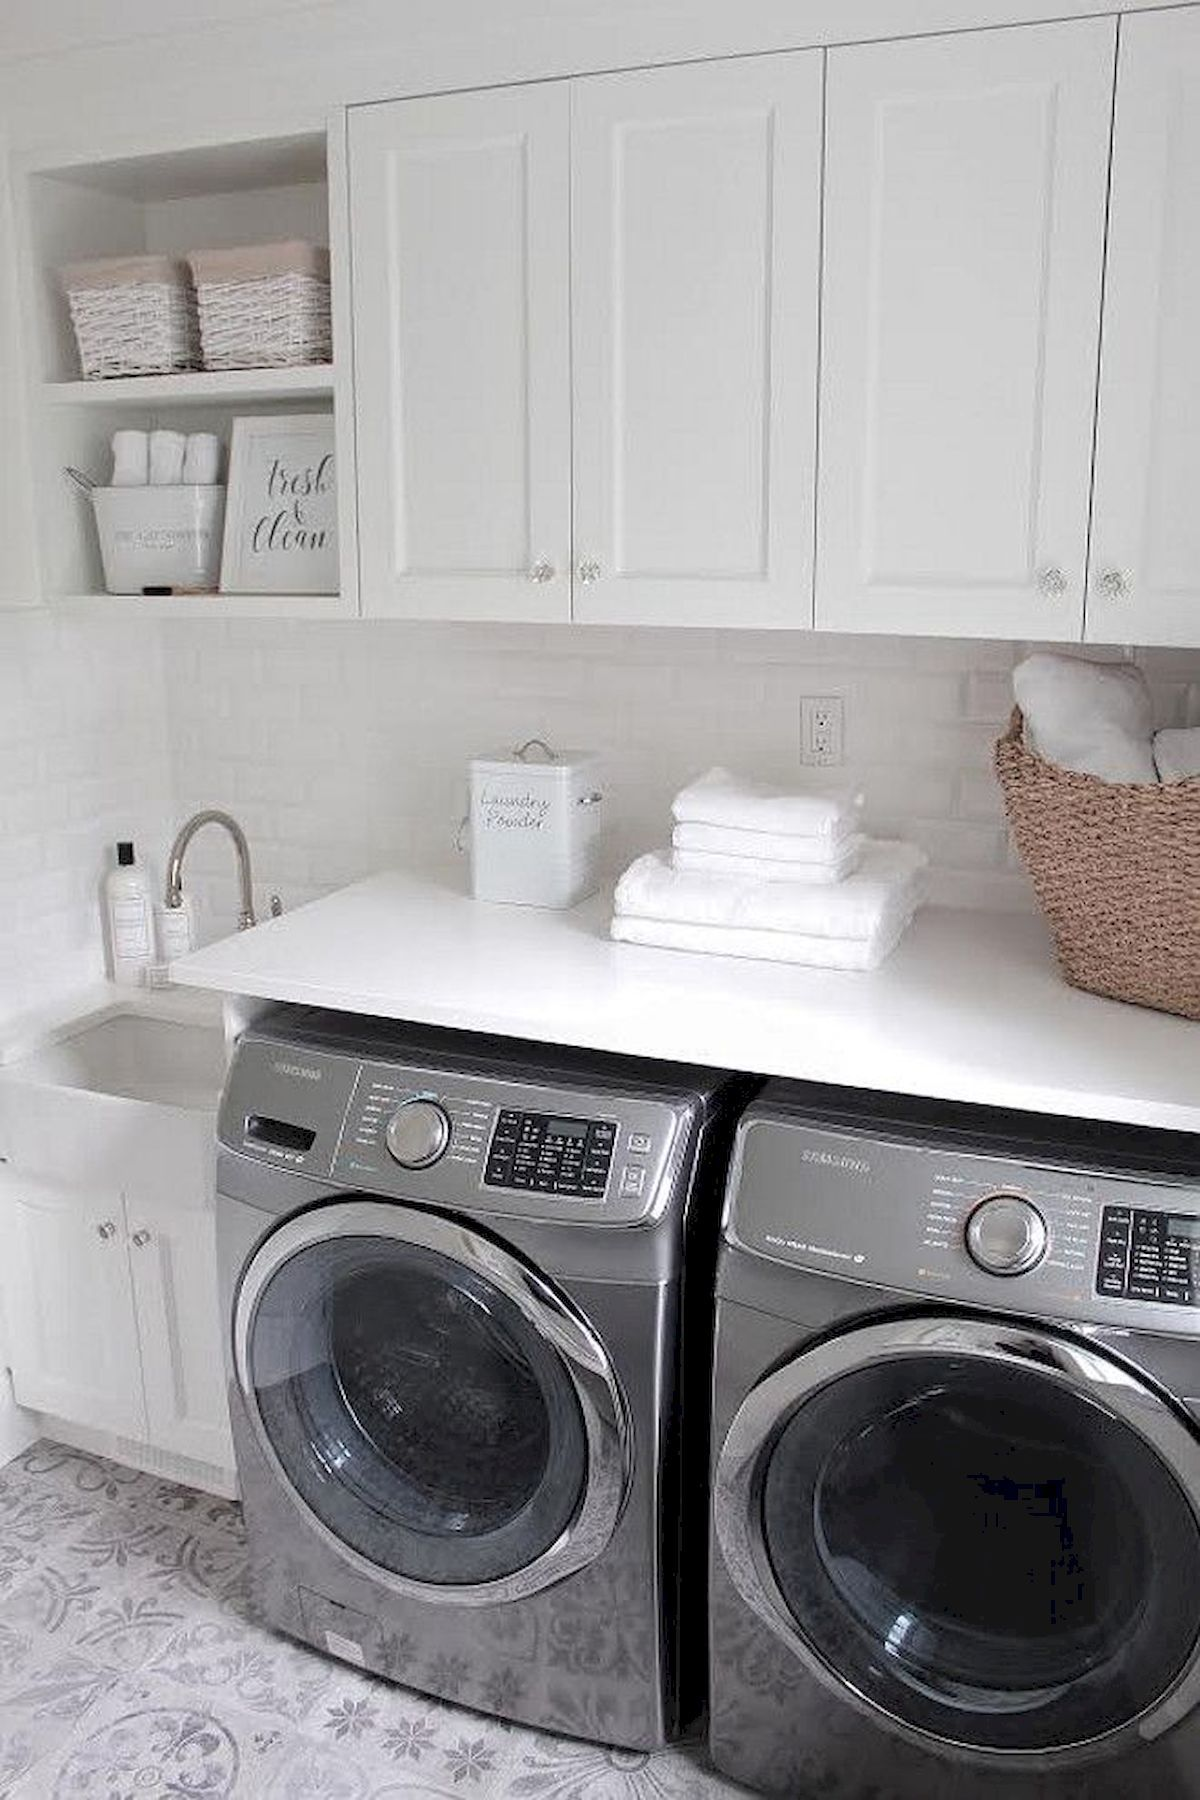 Amazing 55 Best Small Laundry Room Photo Storage Ideas The General Concept For A Laun Https White Laundry Rooms Small Laundry Rooms Laundry Room Decor